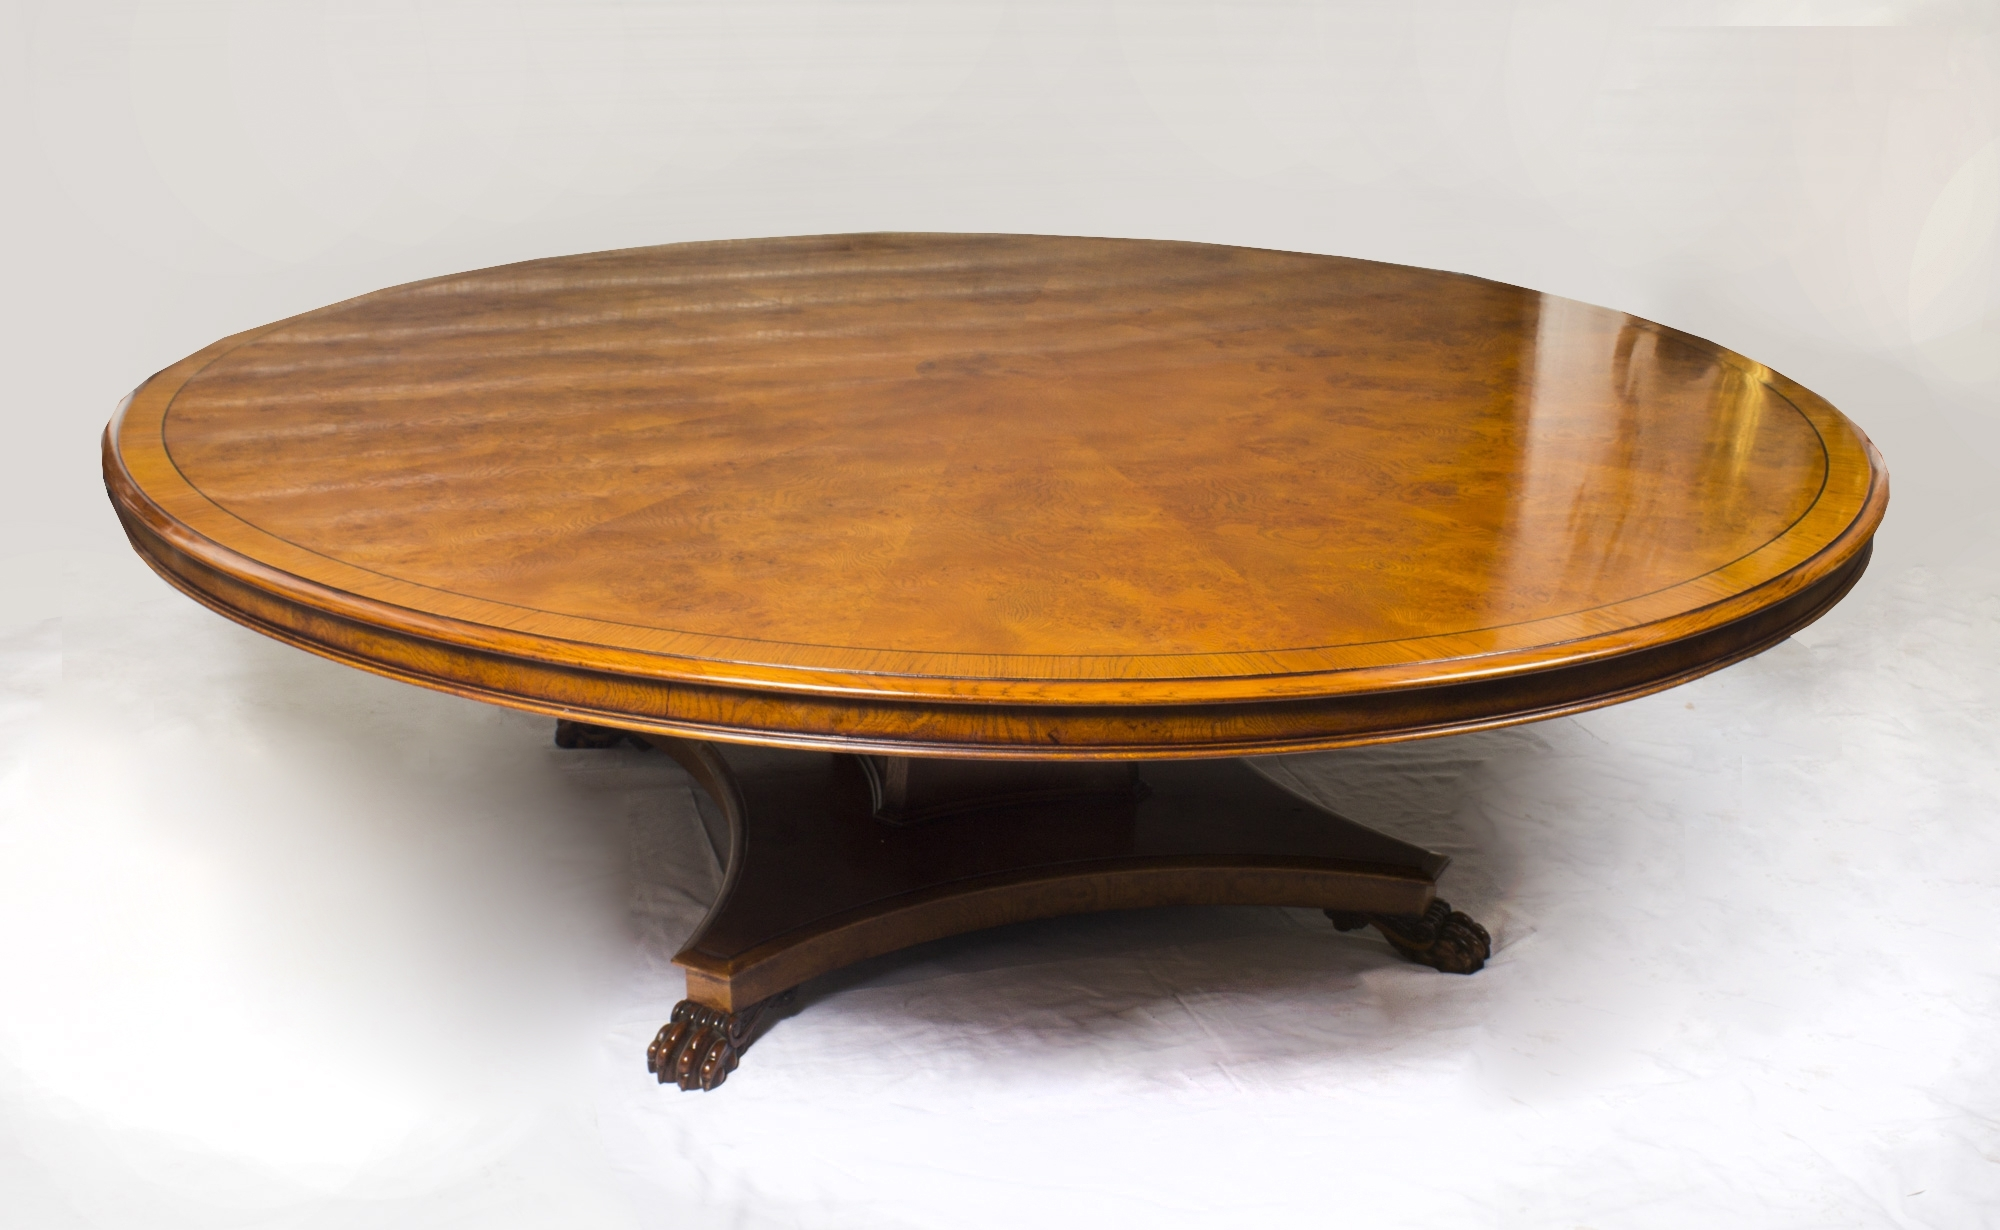 Circular Oak Dining Tables With Most Up To Date Vintage Regency Style 8Ft Round Pollard Oak Dining Table 20Thc (View 24 of 25)